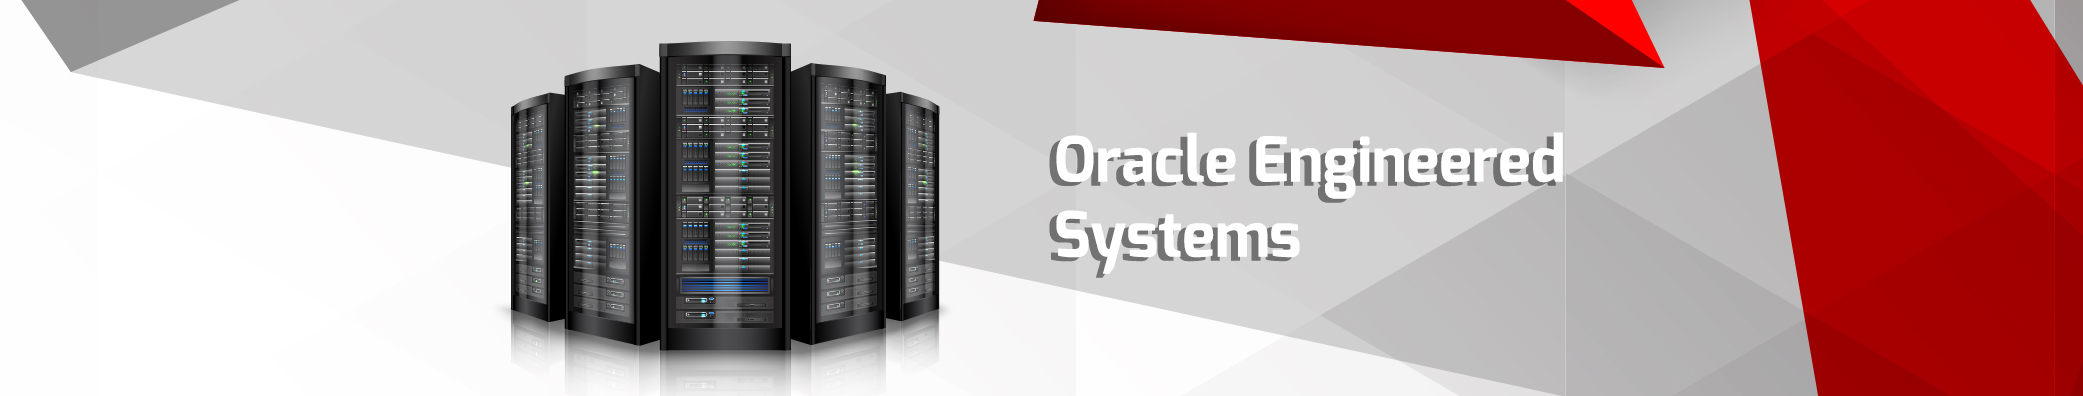 Oracle Engineered Systems Disrupting Converged Infrastructure Marketplace